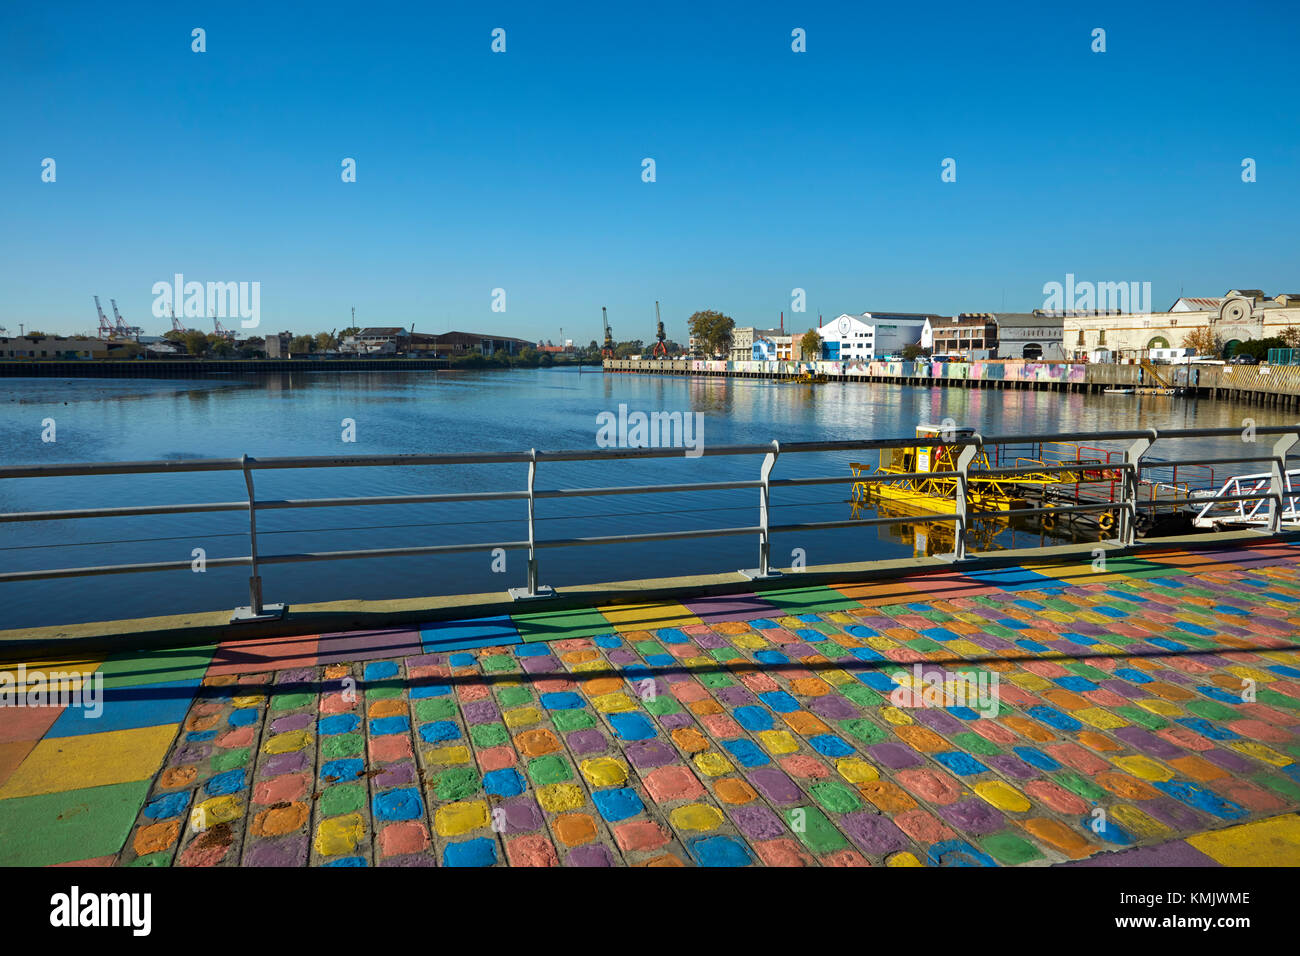 Painted cobblestones and Matanza River, La Boca, Buenos Aires, Argentina, South America - Stock Image